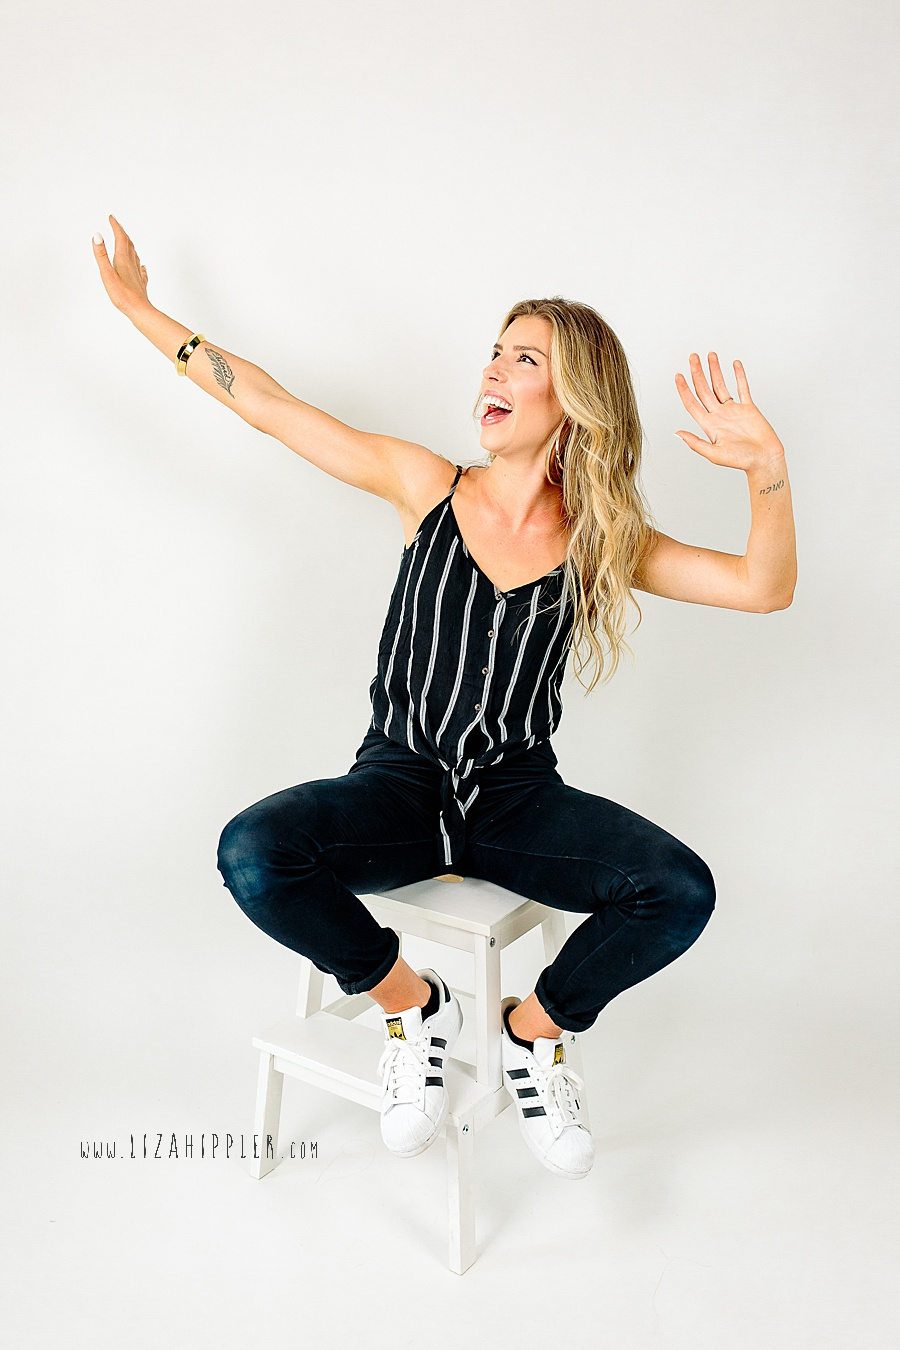 fun headshot of blonde chick doing the dab on a white background